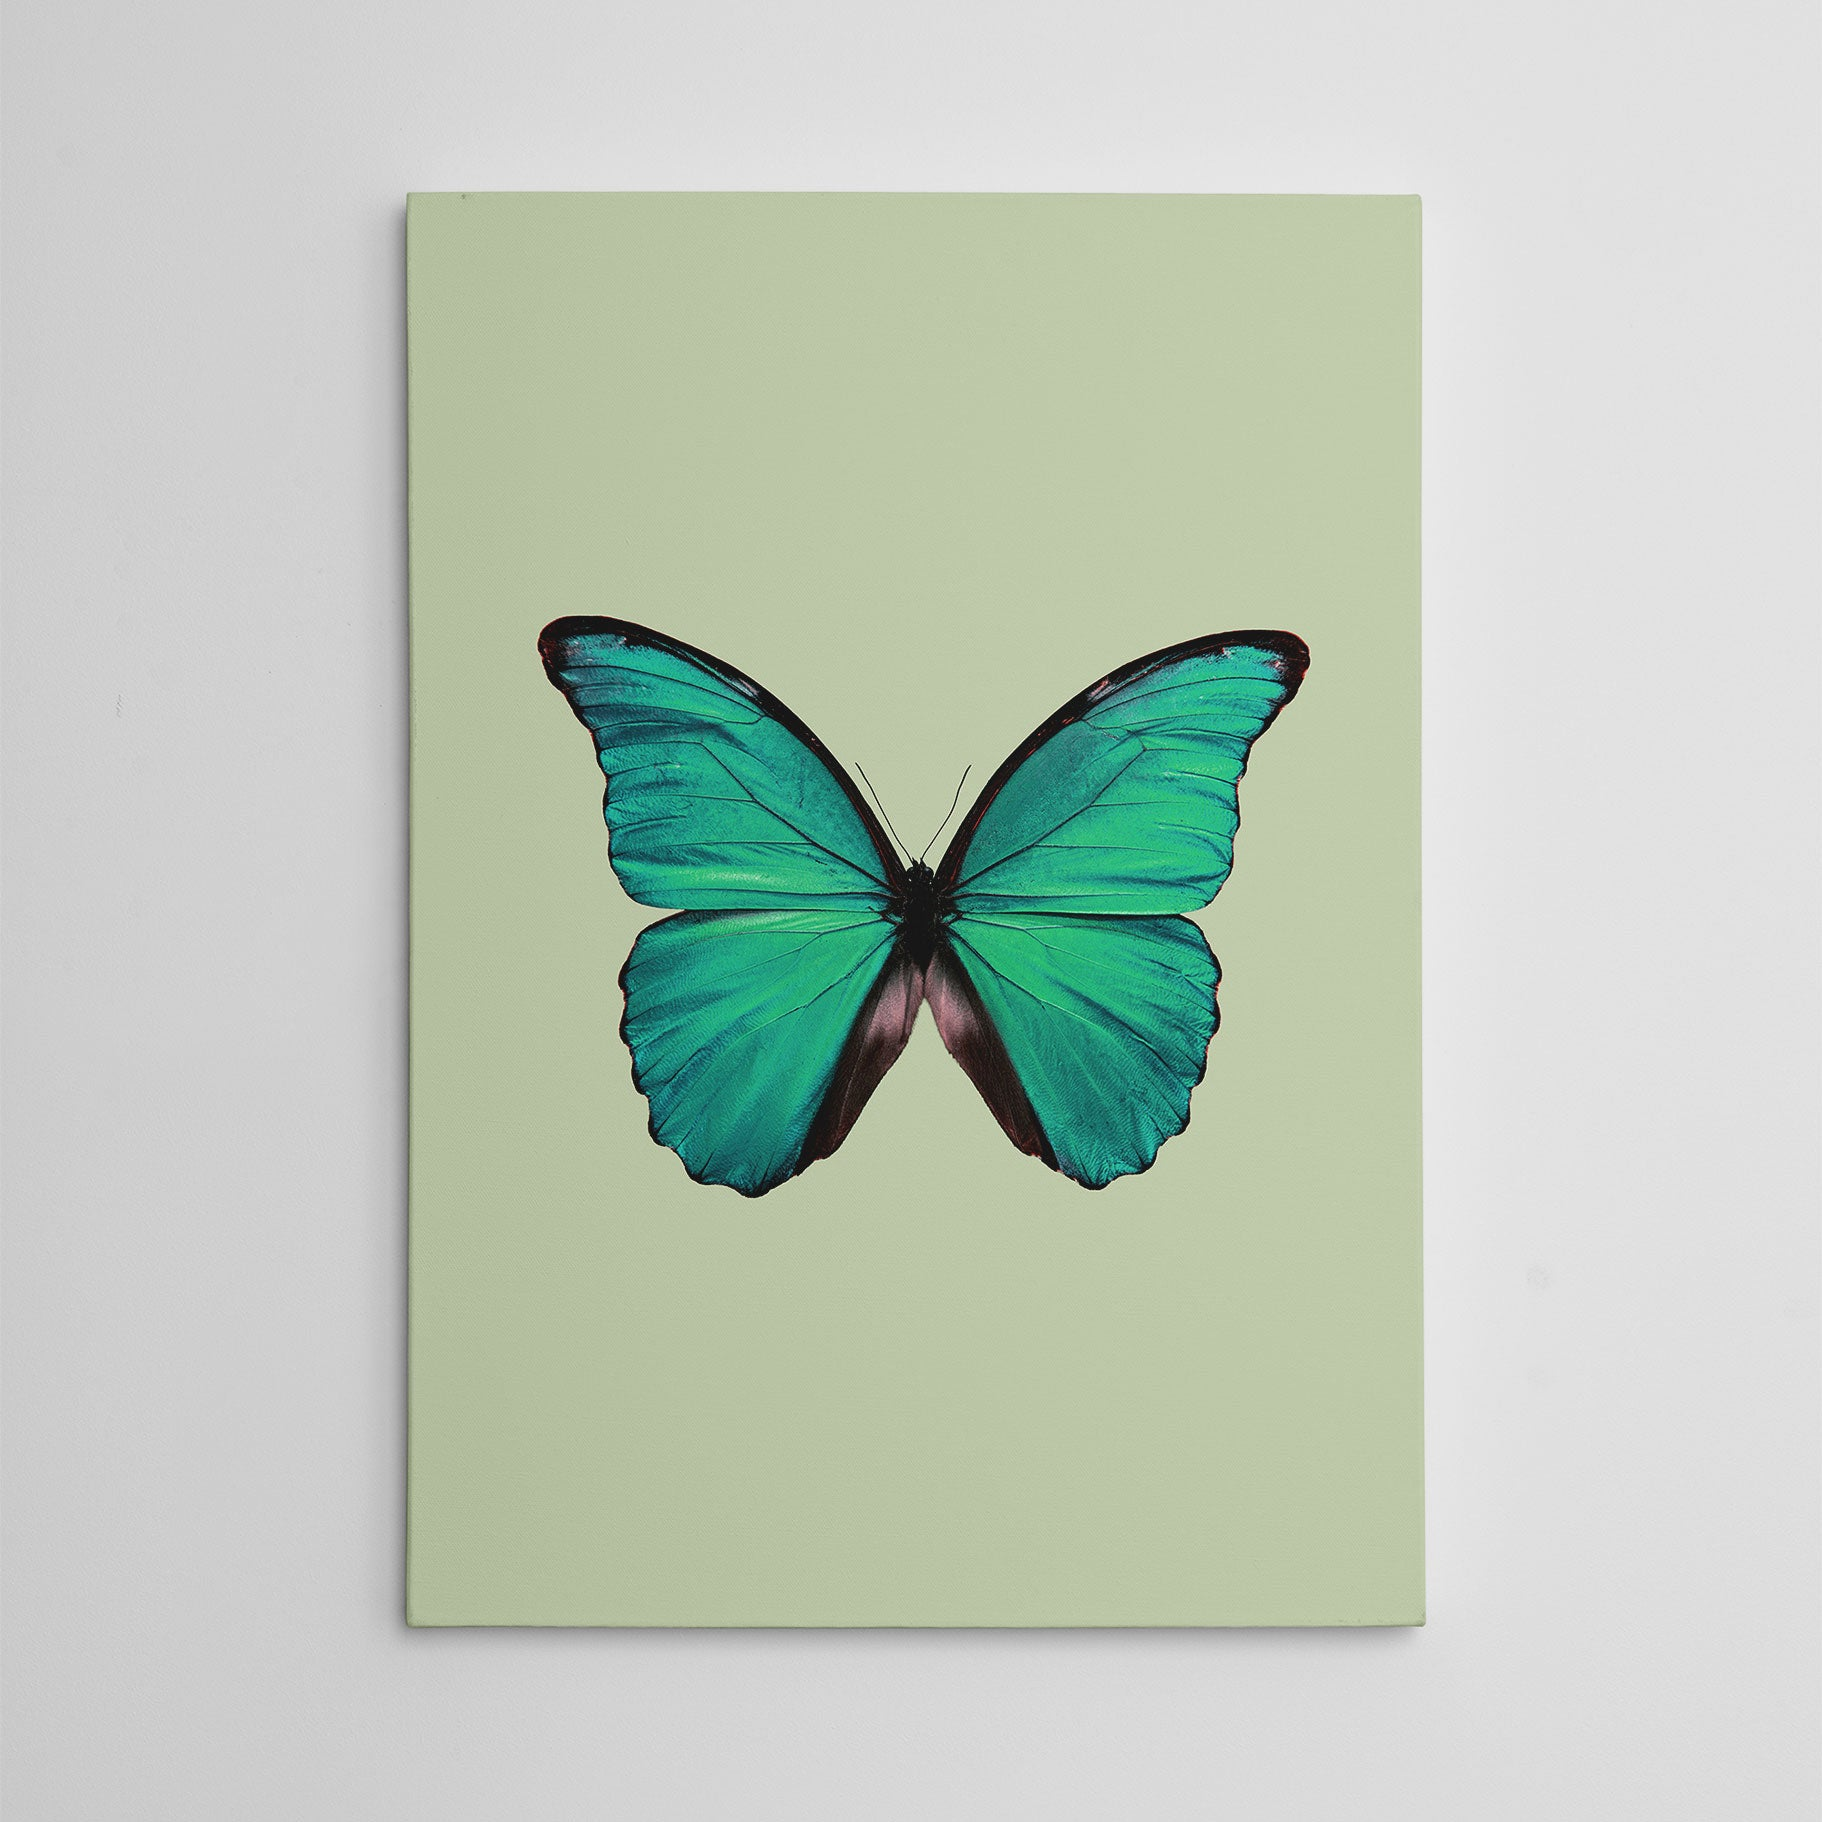 Beautiful canvas print with a green butterfly and background